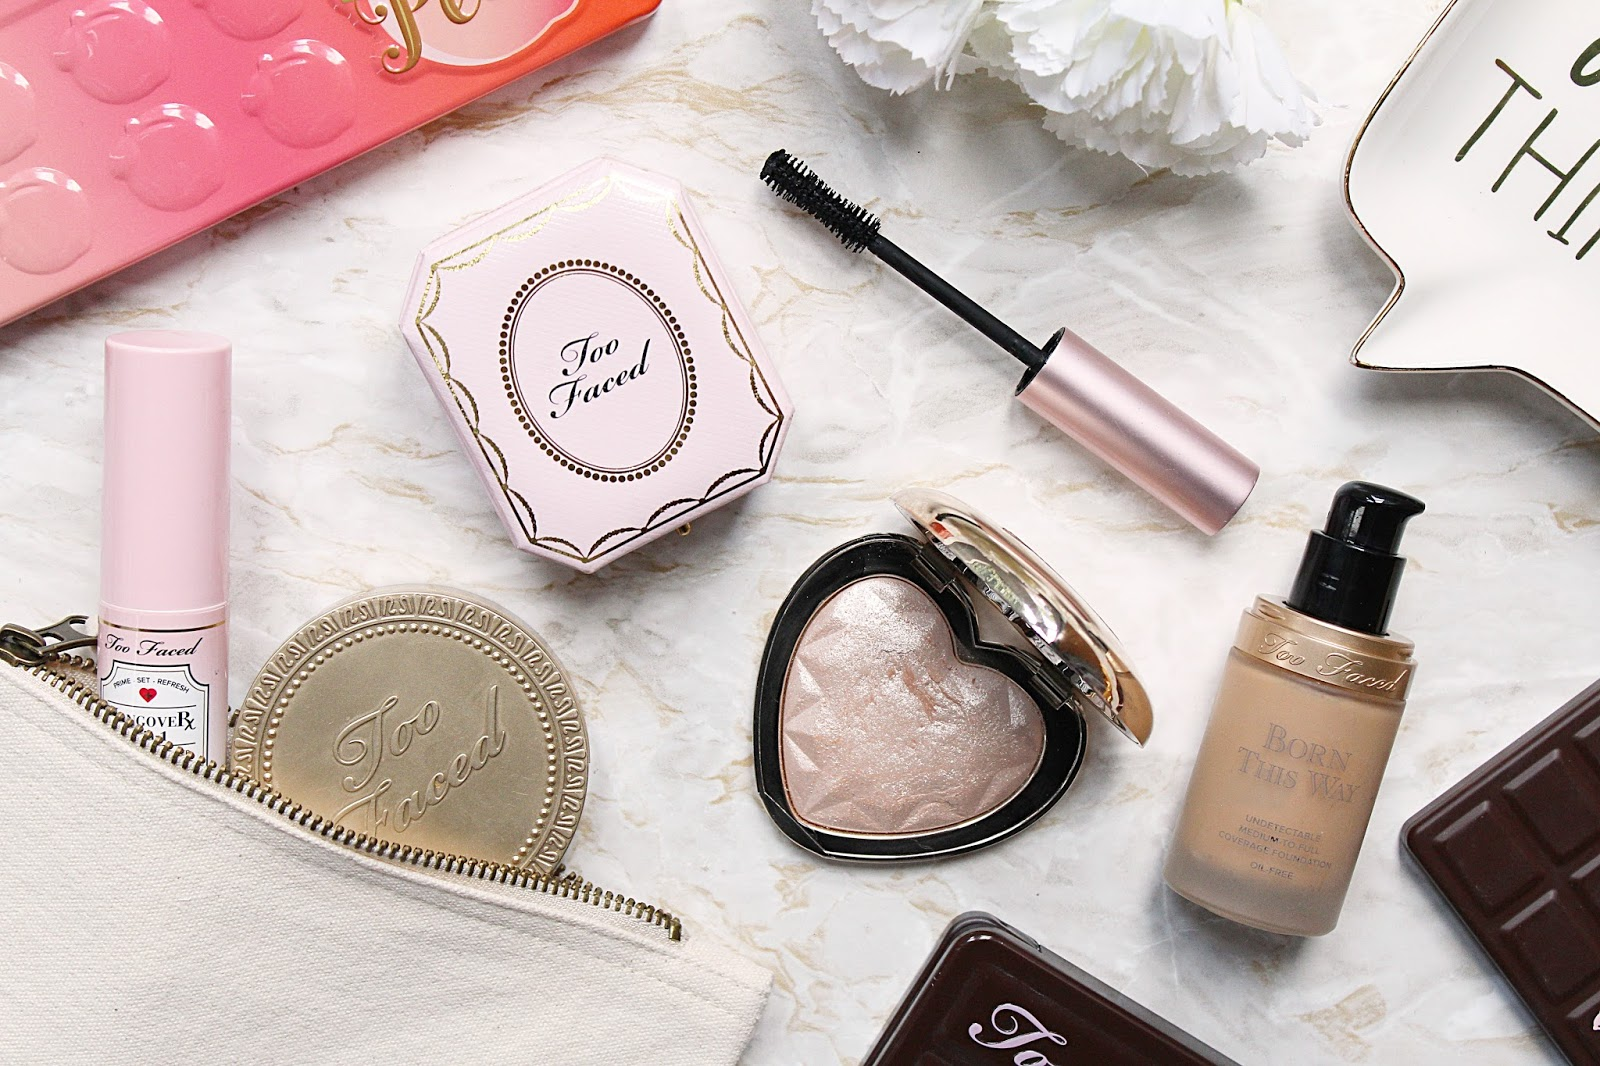 Too Faced Recommendations